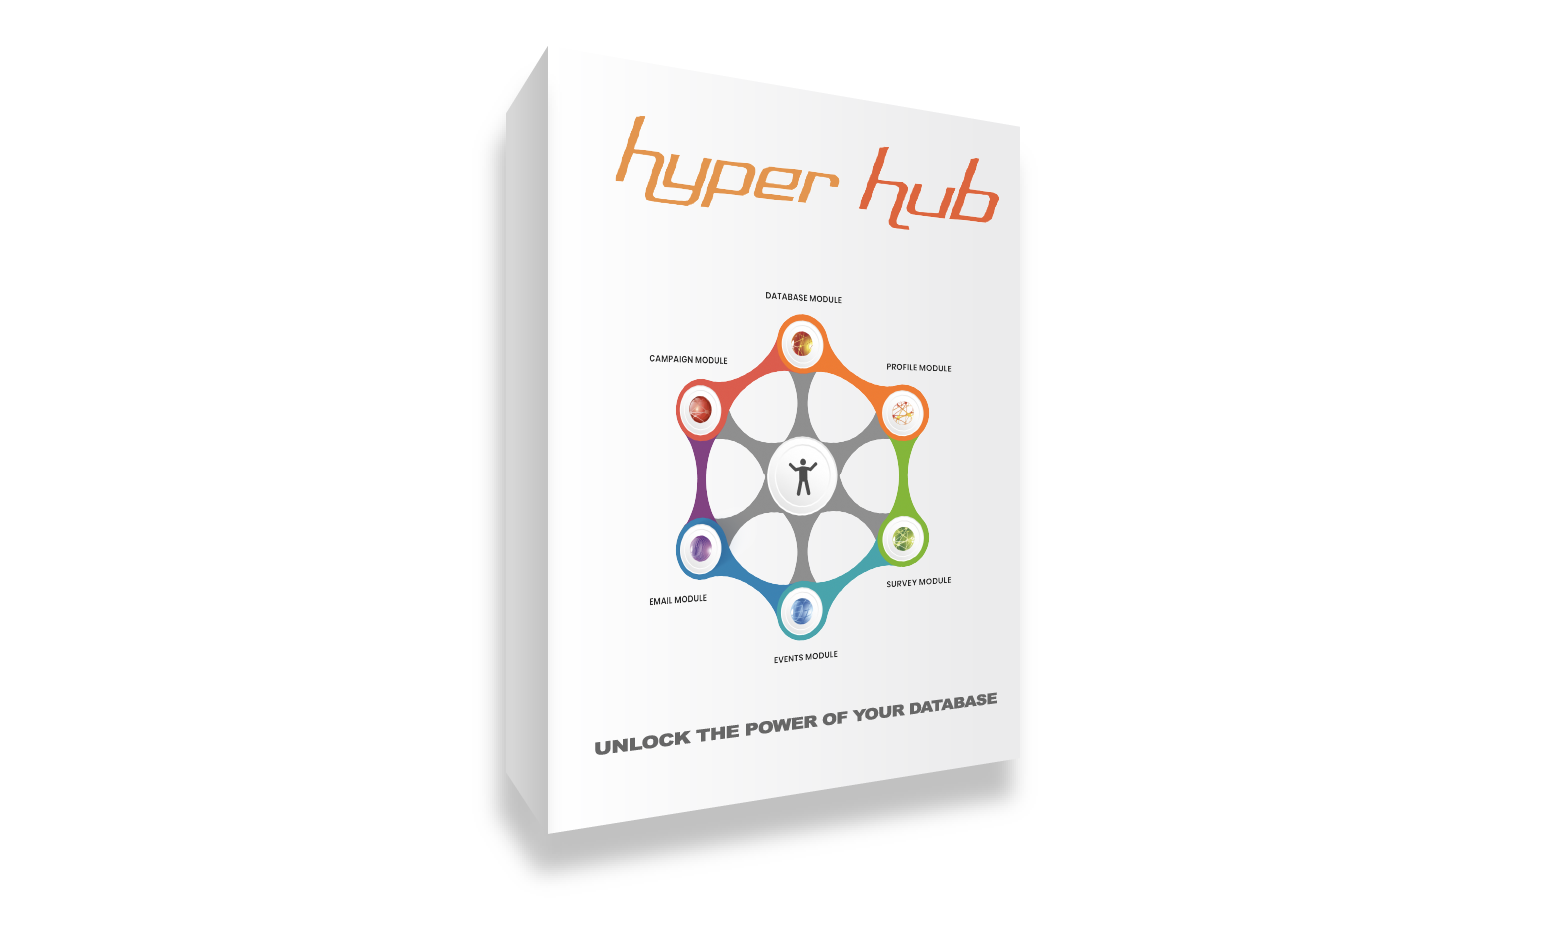 Hyper Hub Automated Marketing Software Digital & Database Marketing Box